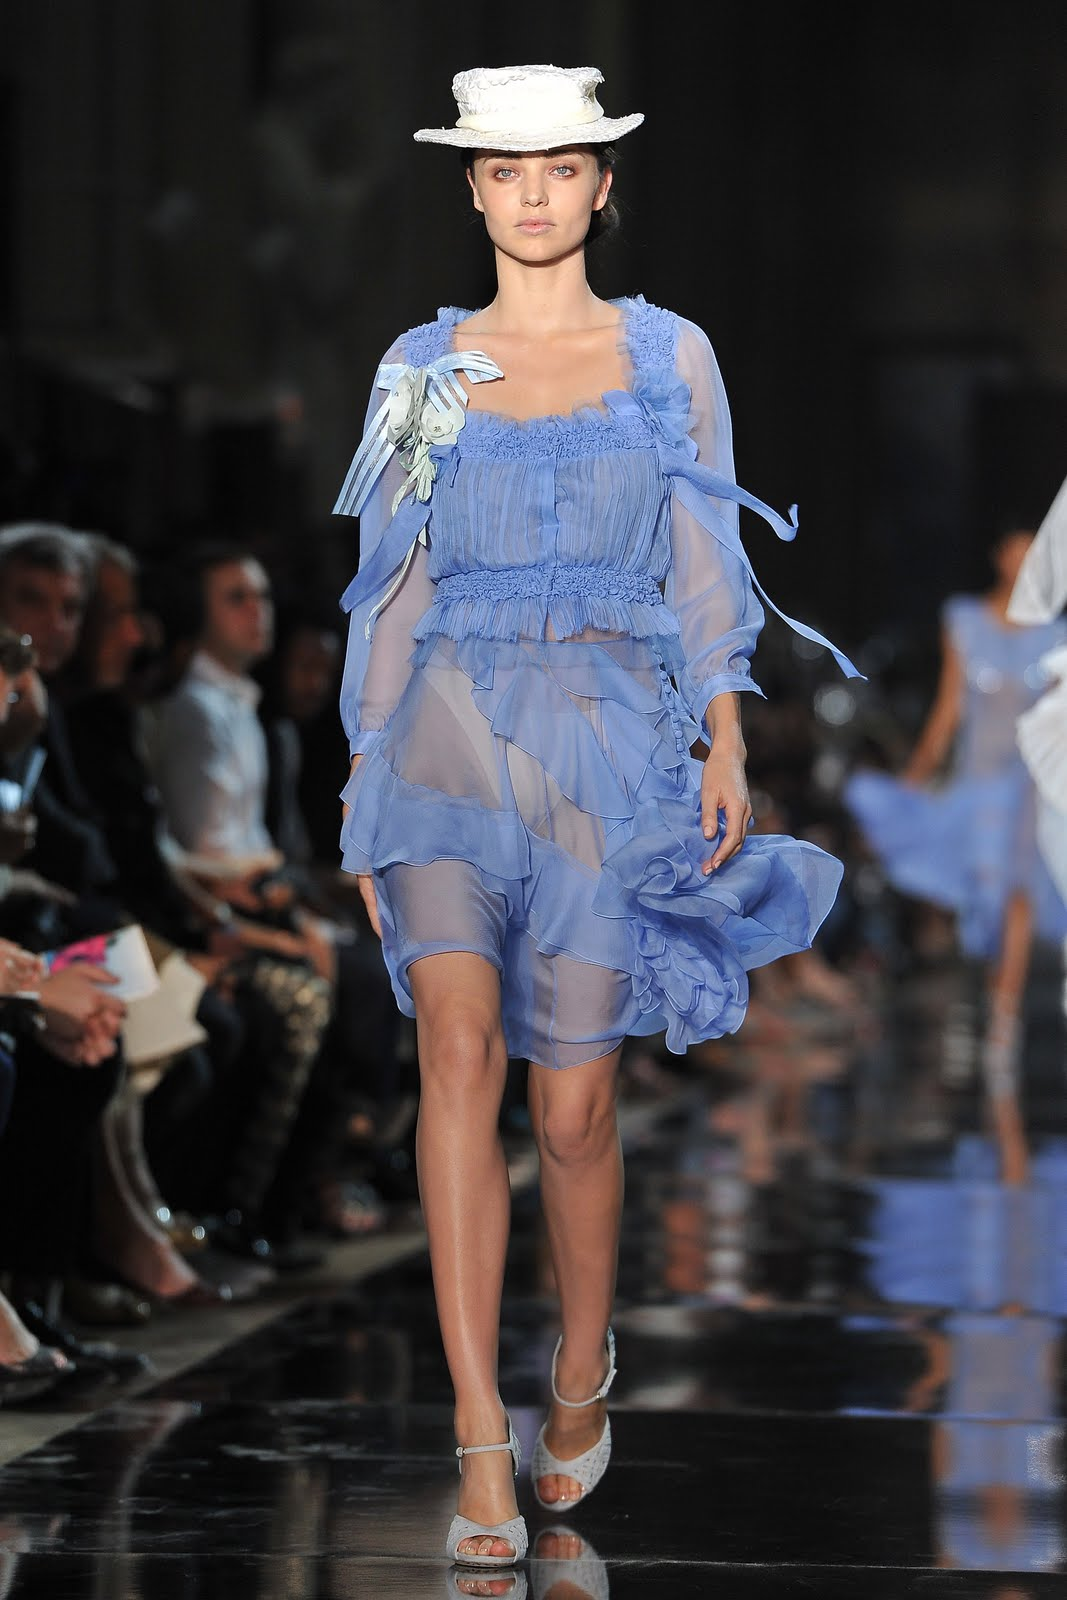 http://4.bp.blogspot.com/-np84ViXSbjU/To3XkcTv5BI/AAAAAAAALvo/7ckn9vQVR8A/s1600/56275_Miranda_Kerr_John_Galliano_Spring_Summer_2012_Ready_to_Wear_show_in_Paris_France_October_2_2011_002_122_1100lo.jpg